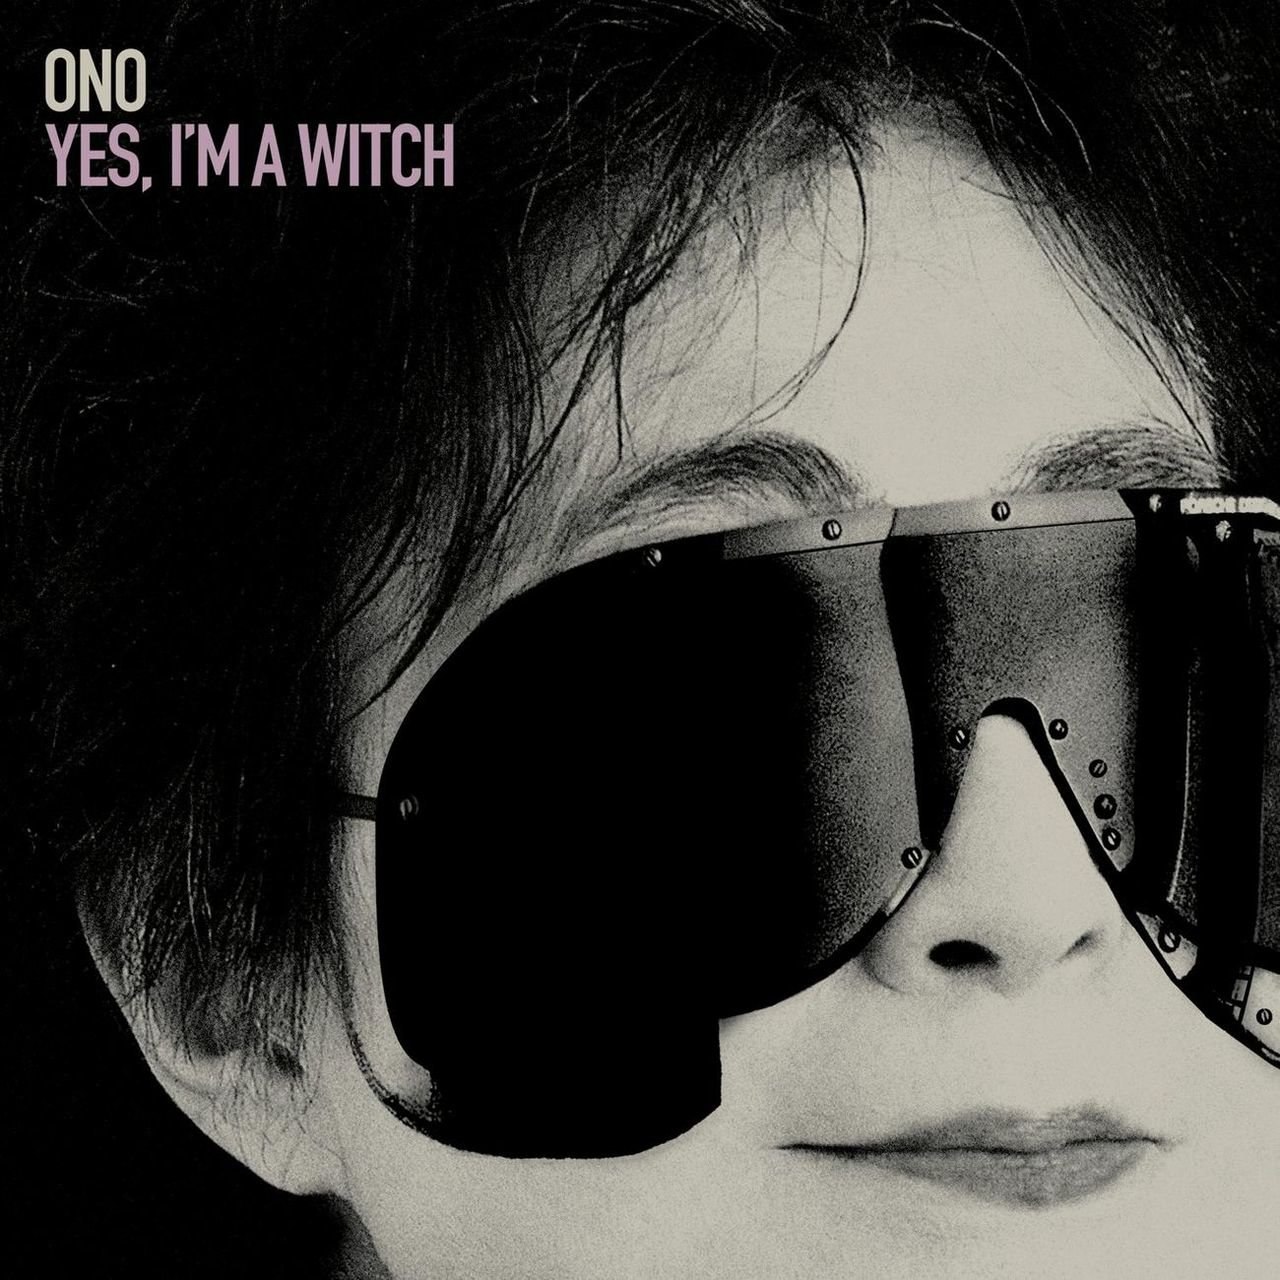 Ono, Yes, I'm a Witch